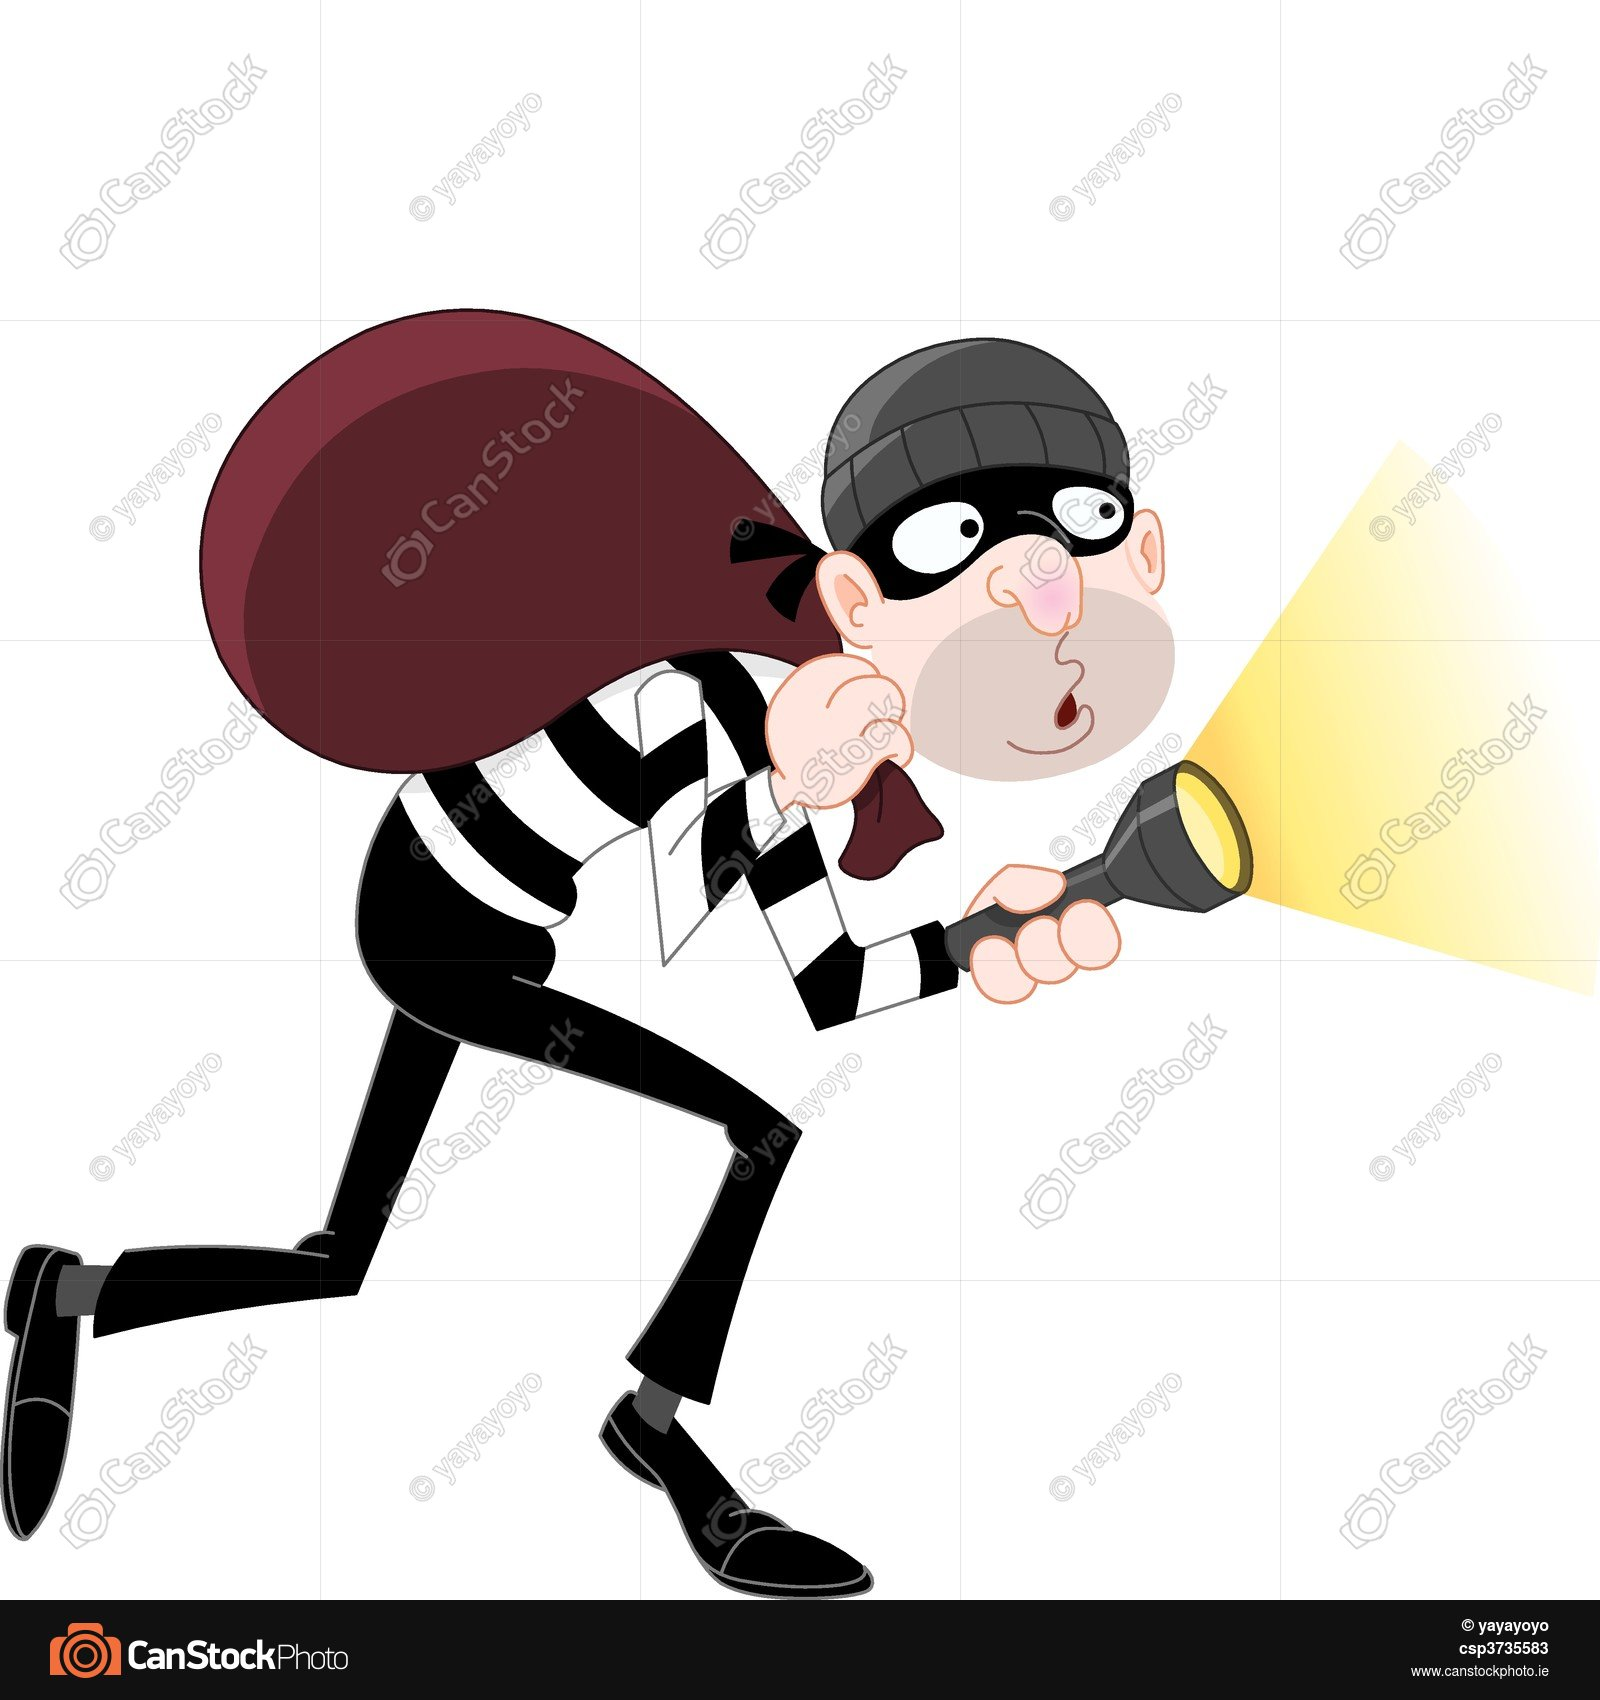 Thief Clipart at GetDrawings.com.